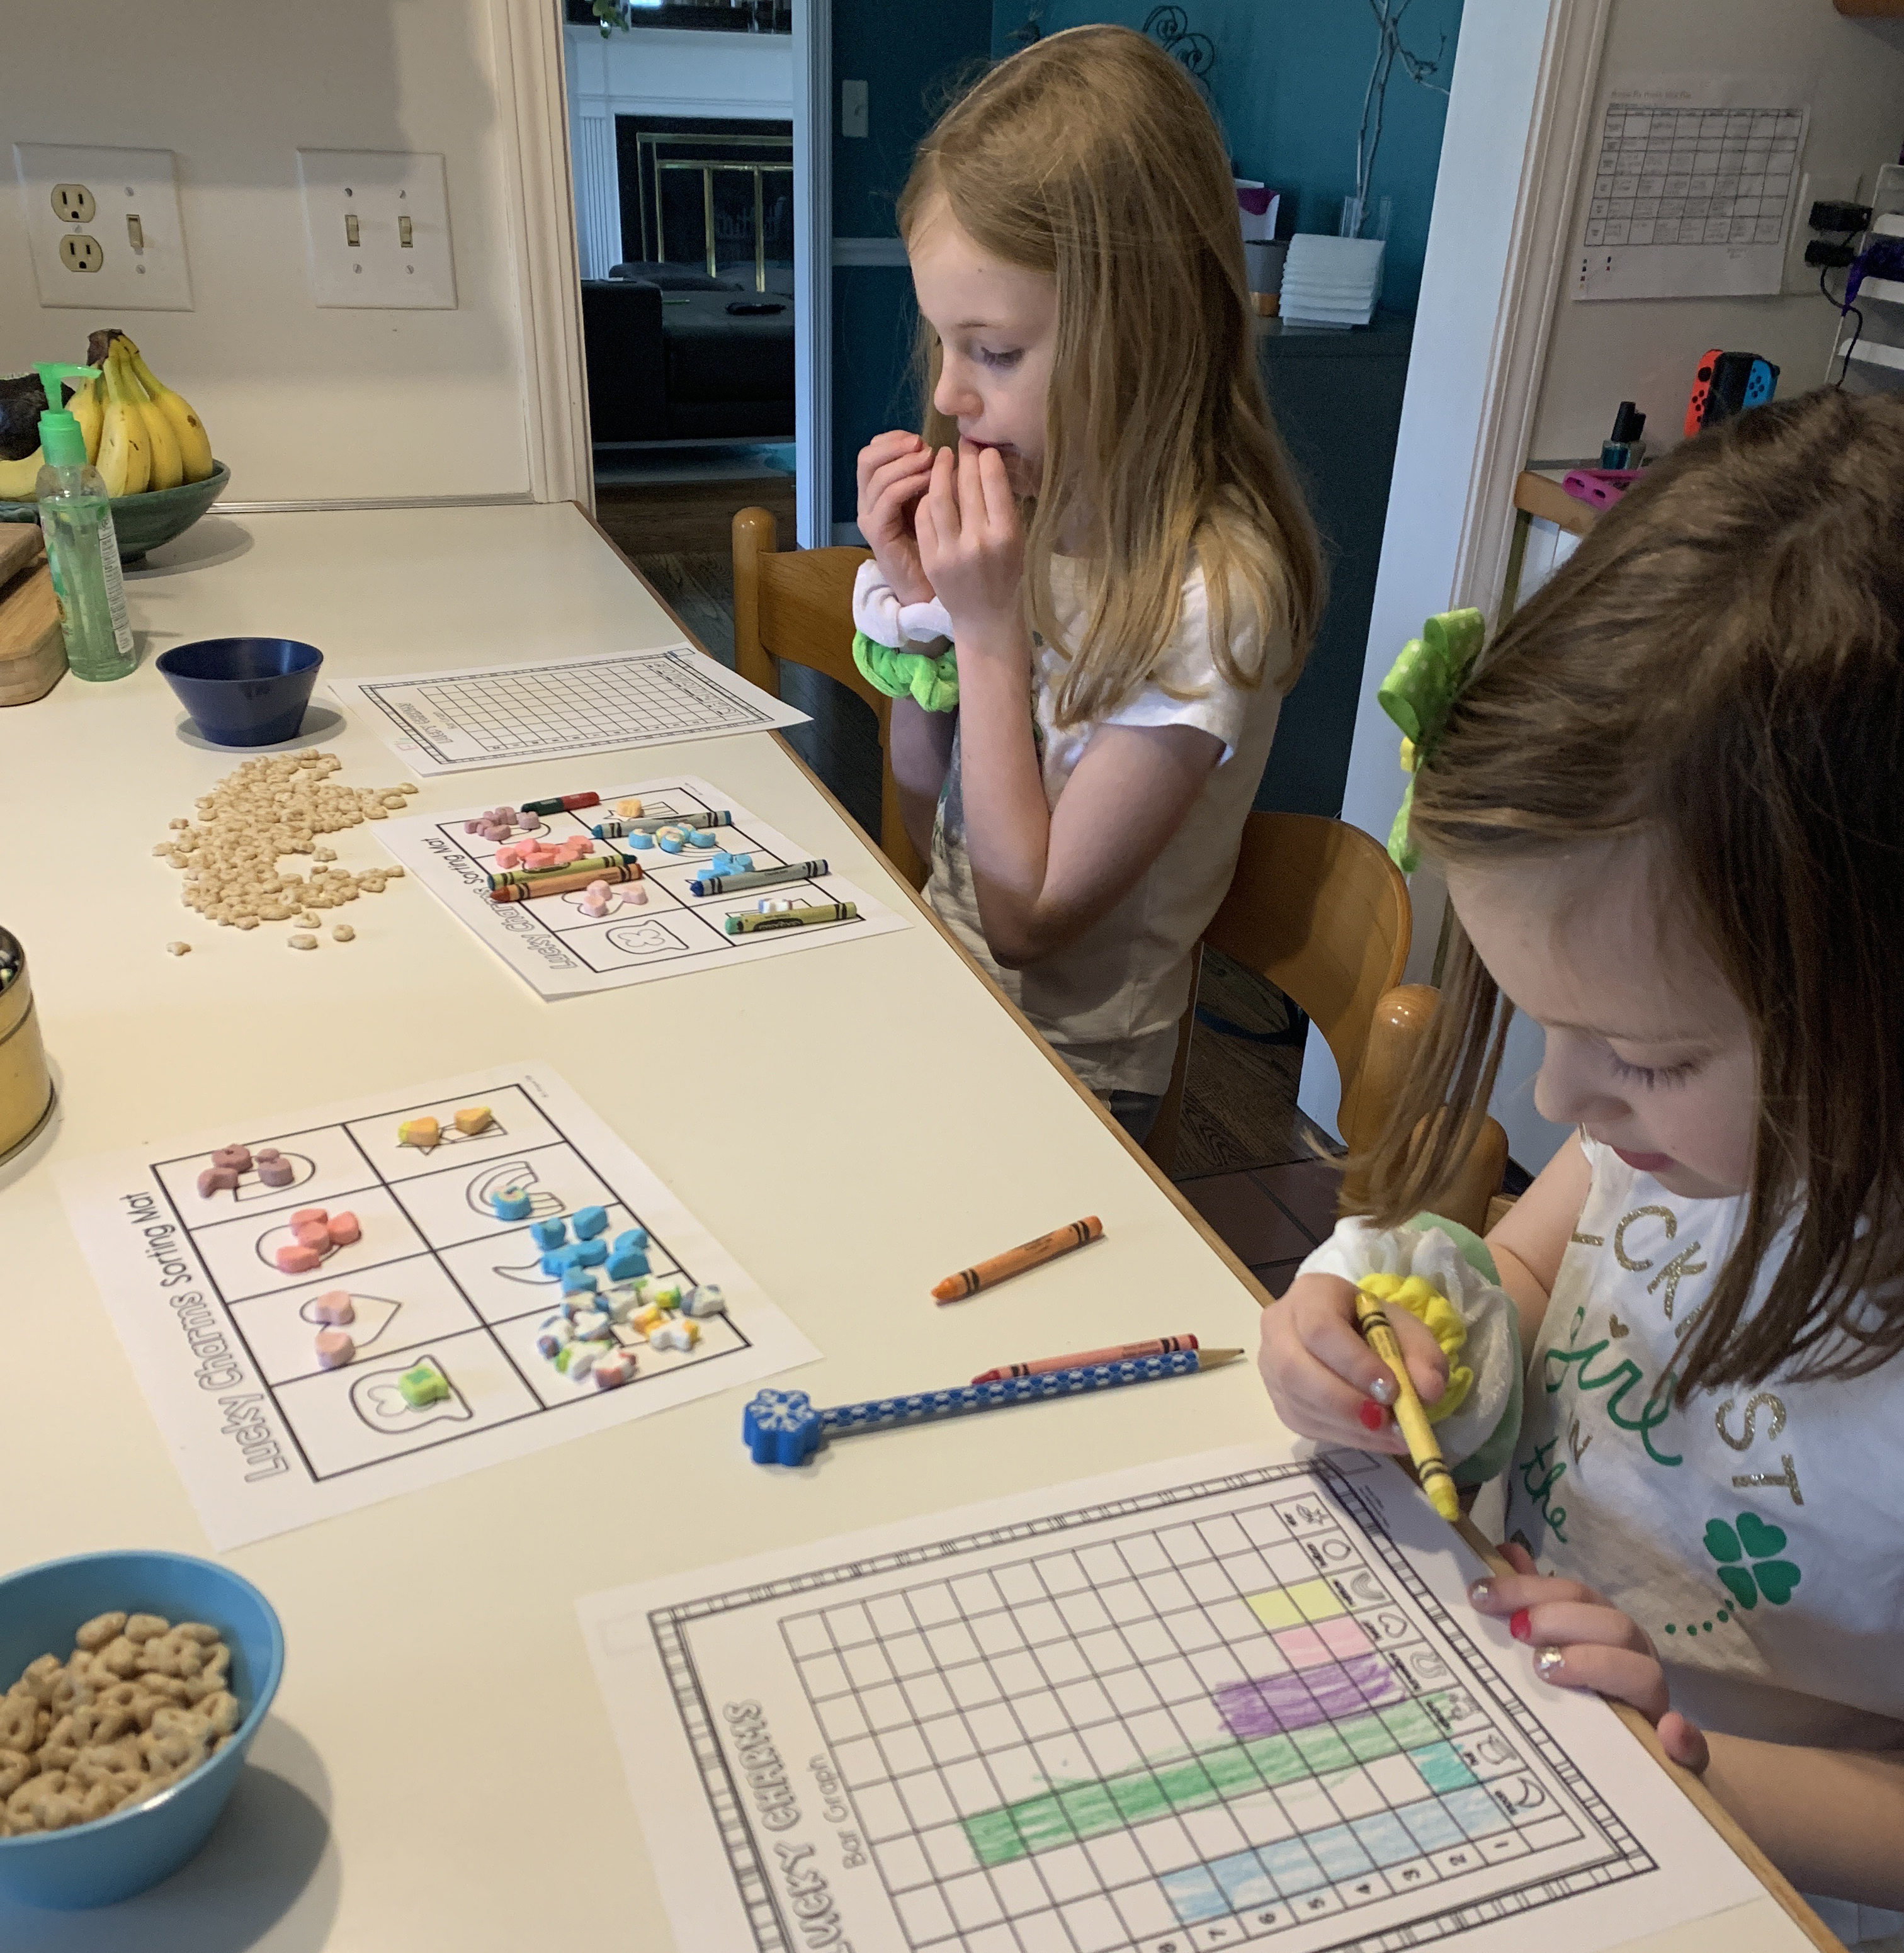 Jessica Troike creatively used Lucky Charms to teach her kids graphing.